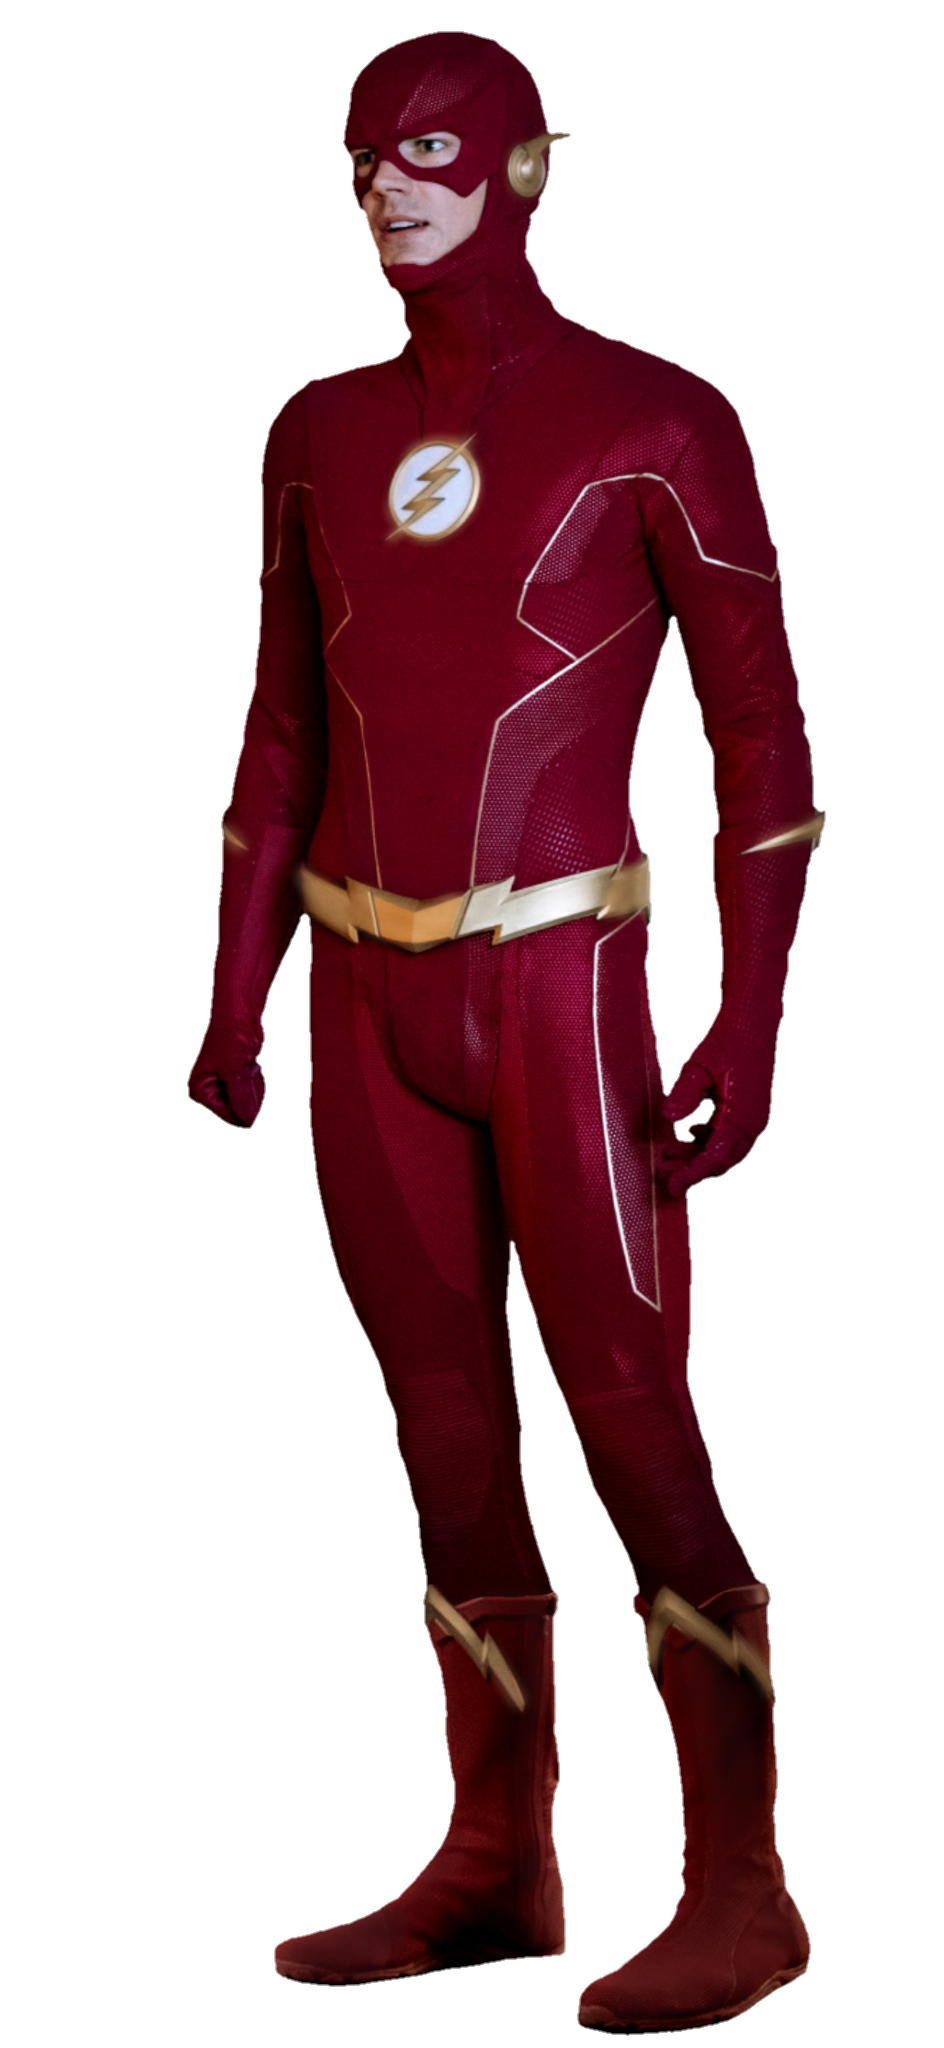 The Flash Barry Allen Earth 1 Png By Metropolis Hero1125 On Deviantart Flash Barry Allen Barry Allen Metropolis